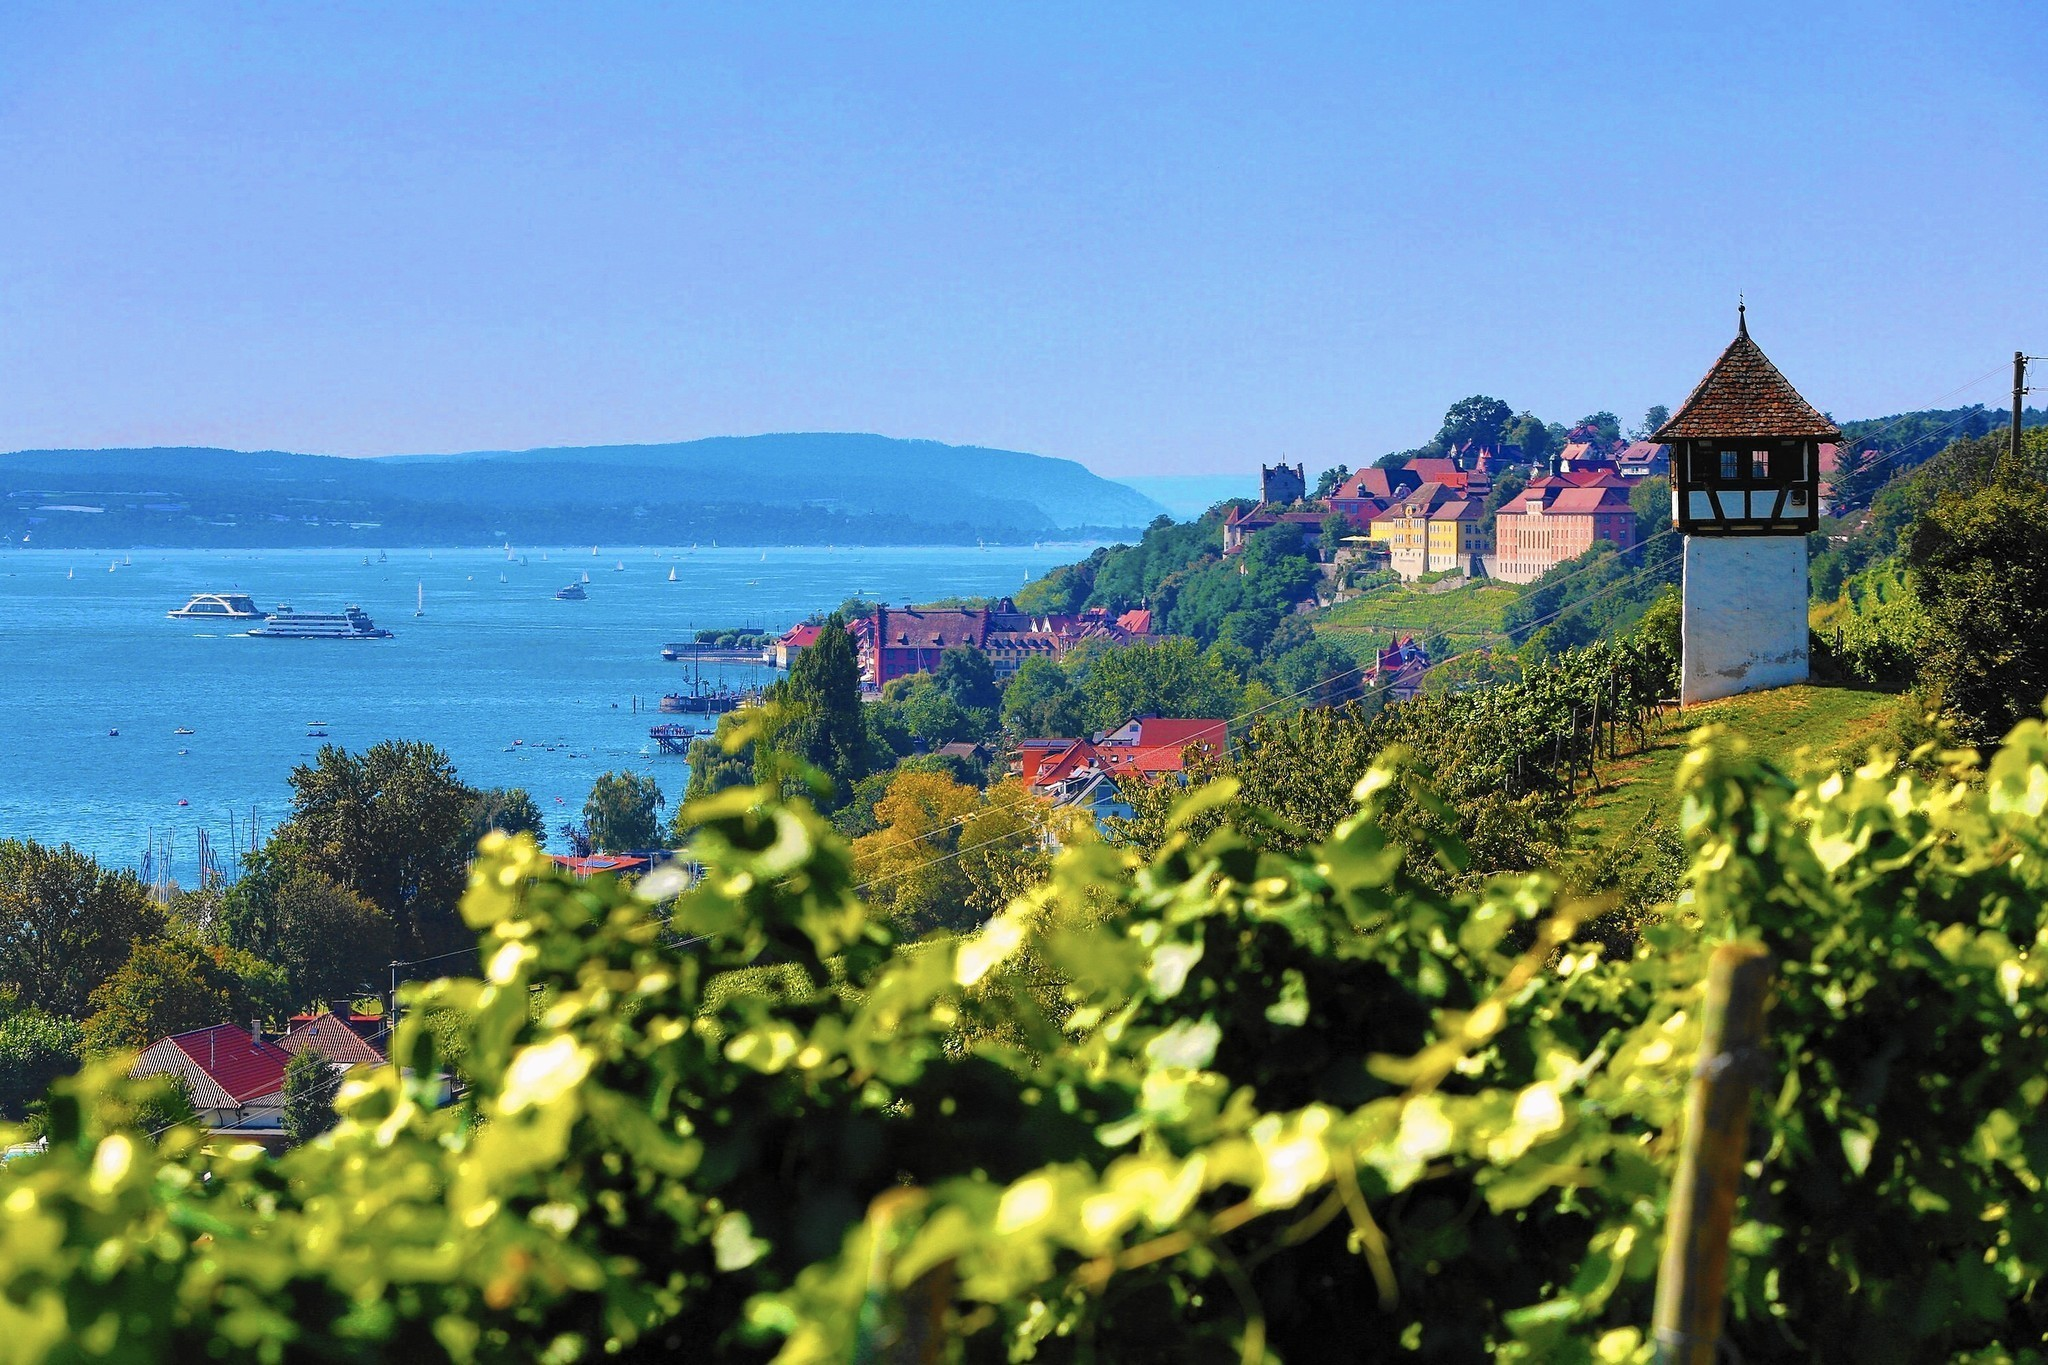 Cycling Lake Constance - Chicago Tribune